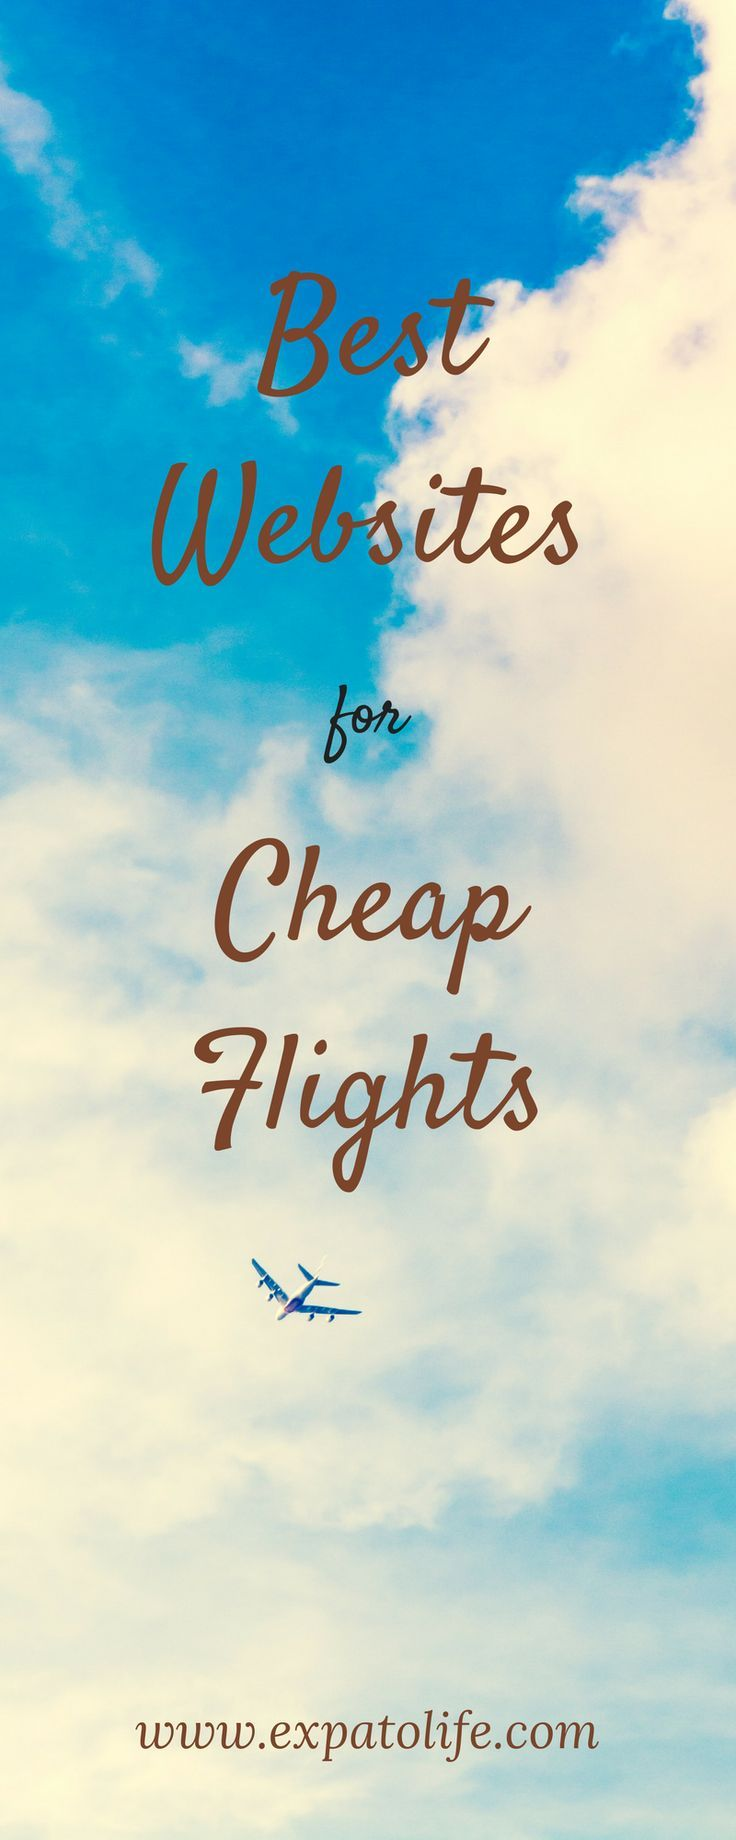 Click here to plan your next holiday on a budget with best websites to find cheap flights. All budget travel websites are listed here. You'll definitely want to save this to your Budget Travel board so you can try apply these tips later on.#budgetfriendly#budget#flights#budgettrip#budgetfriendlyholidays#budgettips#travel#financetips#moneytips#traveltips